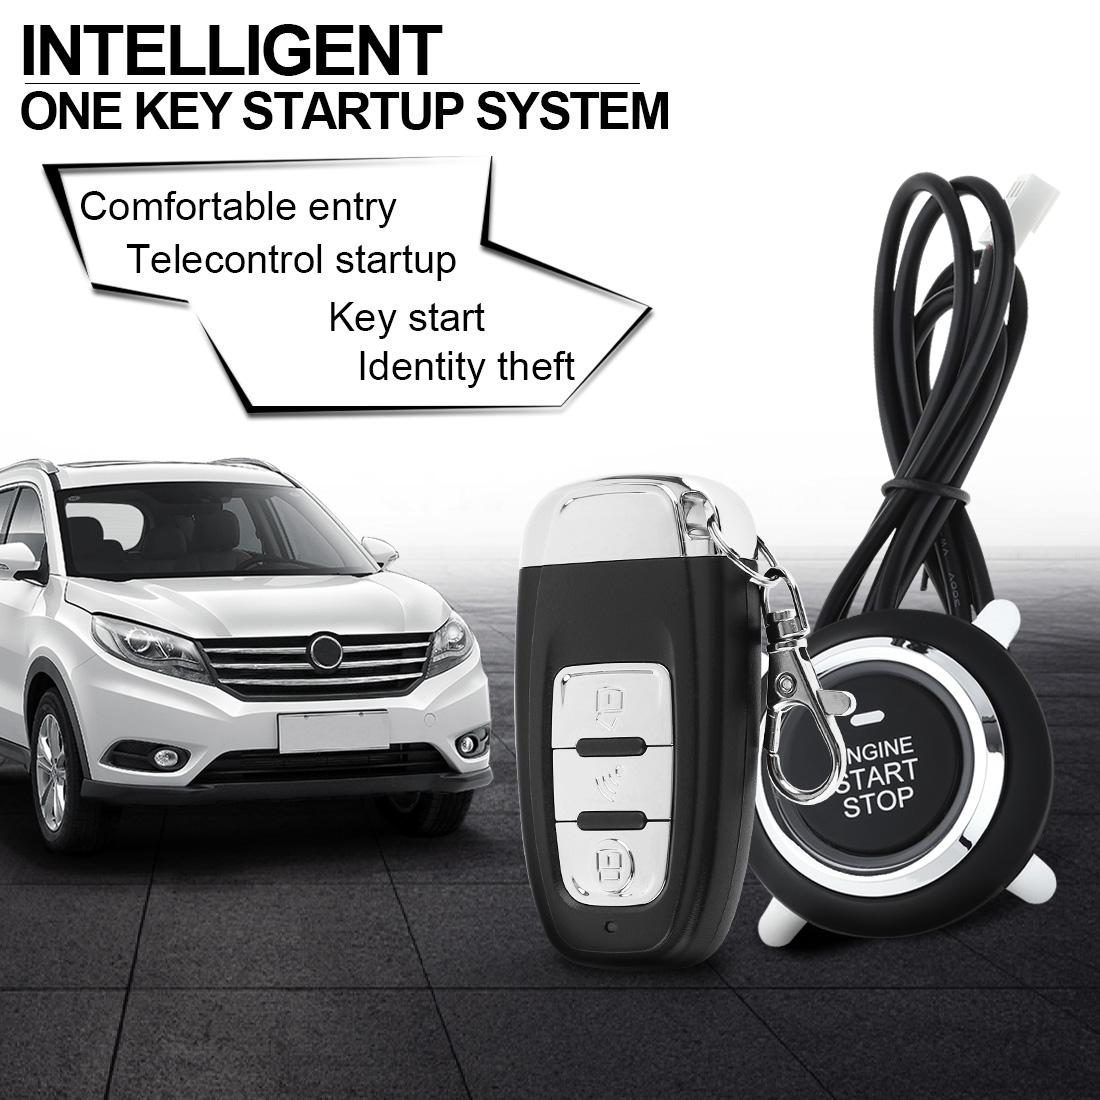 все цены на PKE Car Smart Alarm Remote Initiating System Start Stop Engine System with Auto Central Lock and Keyless Entry